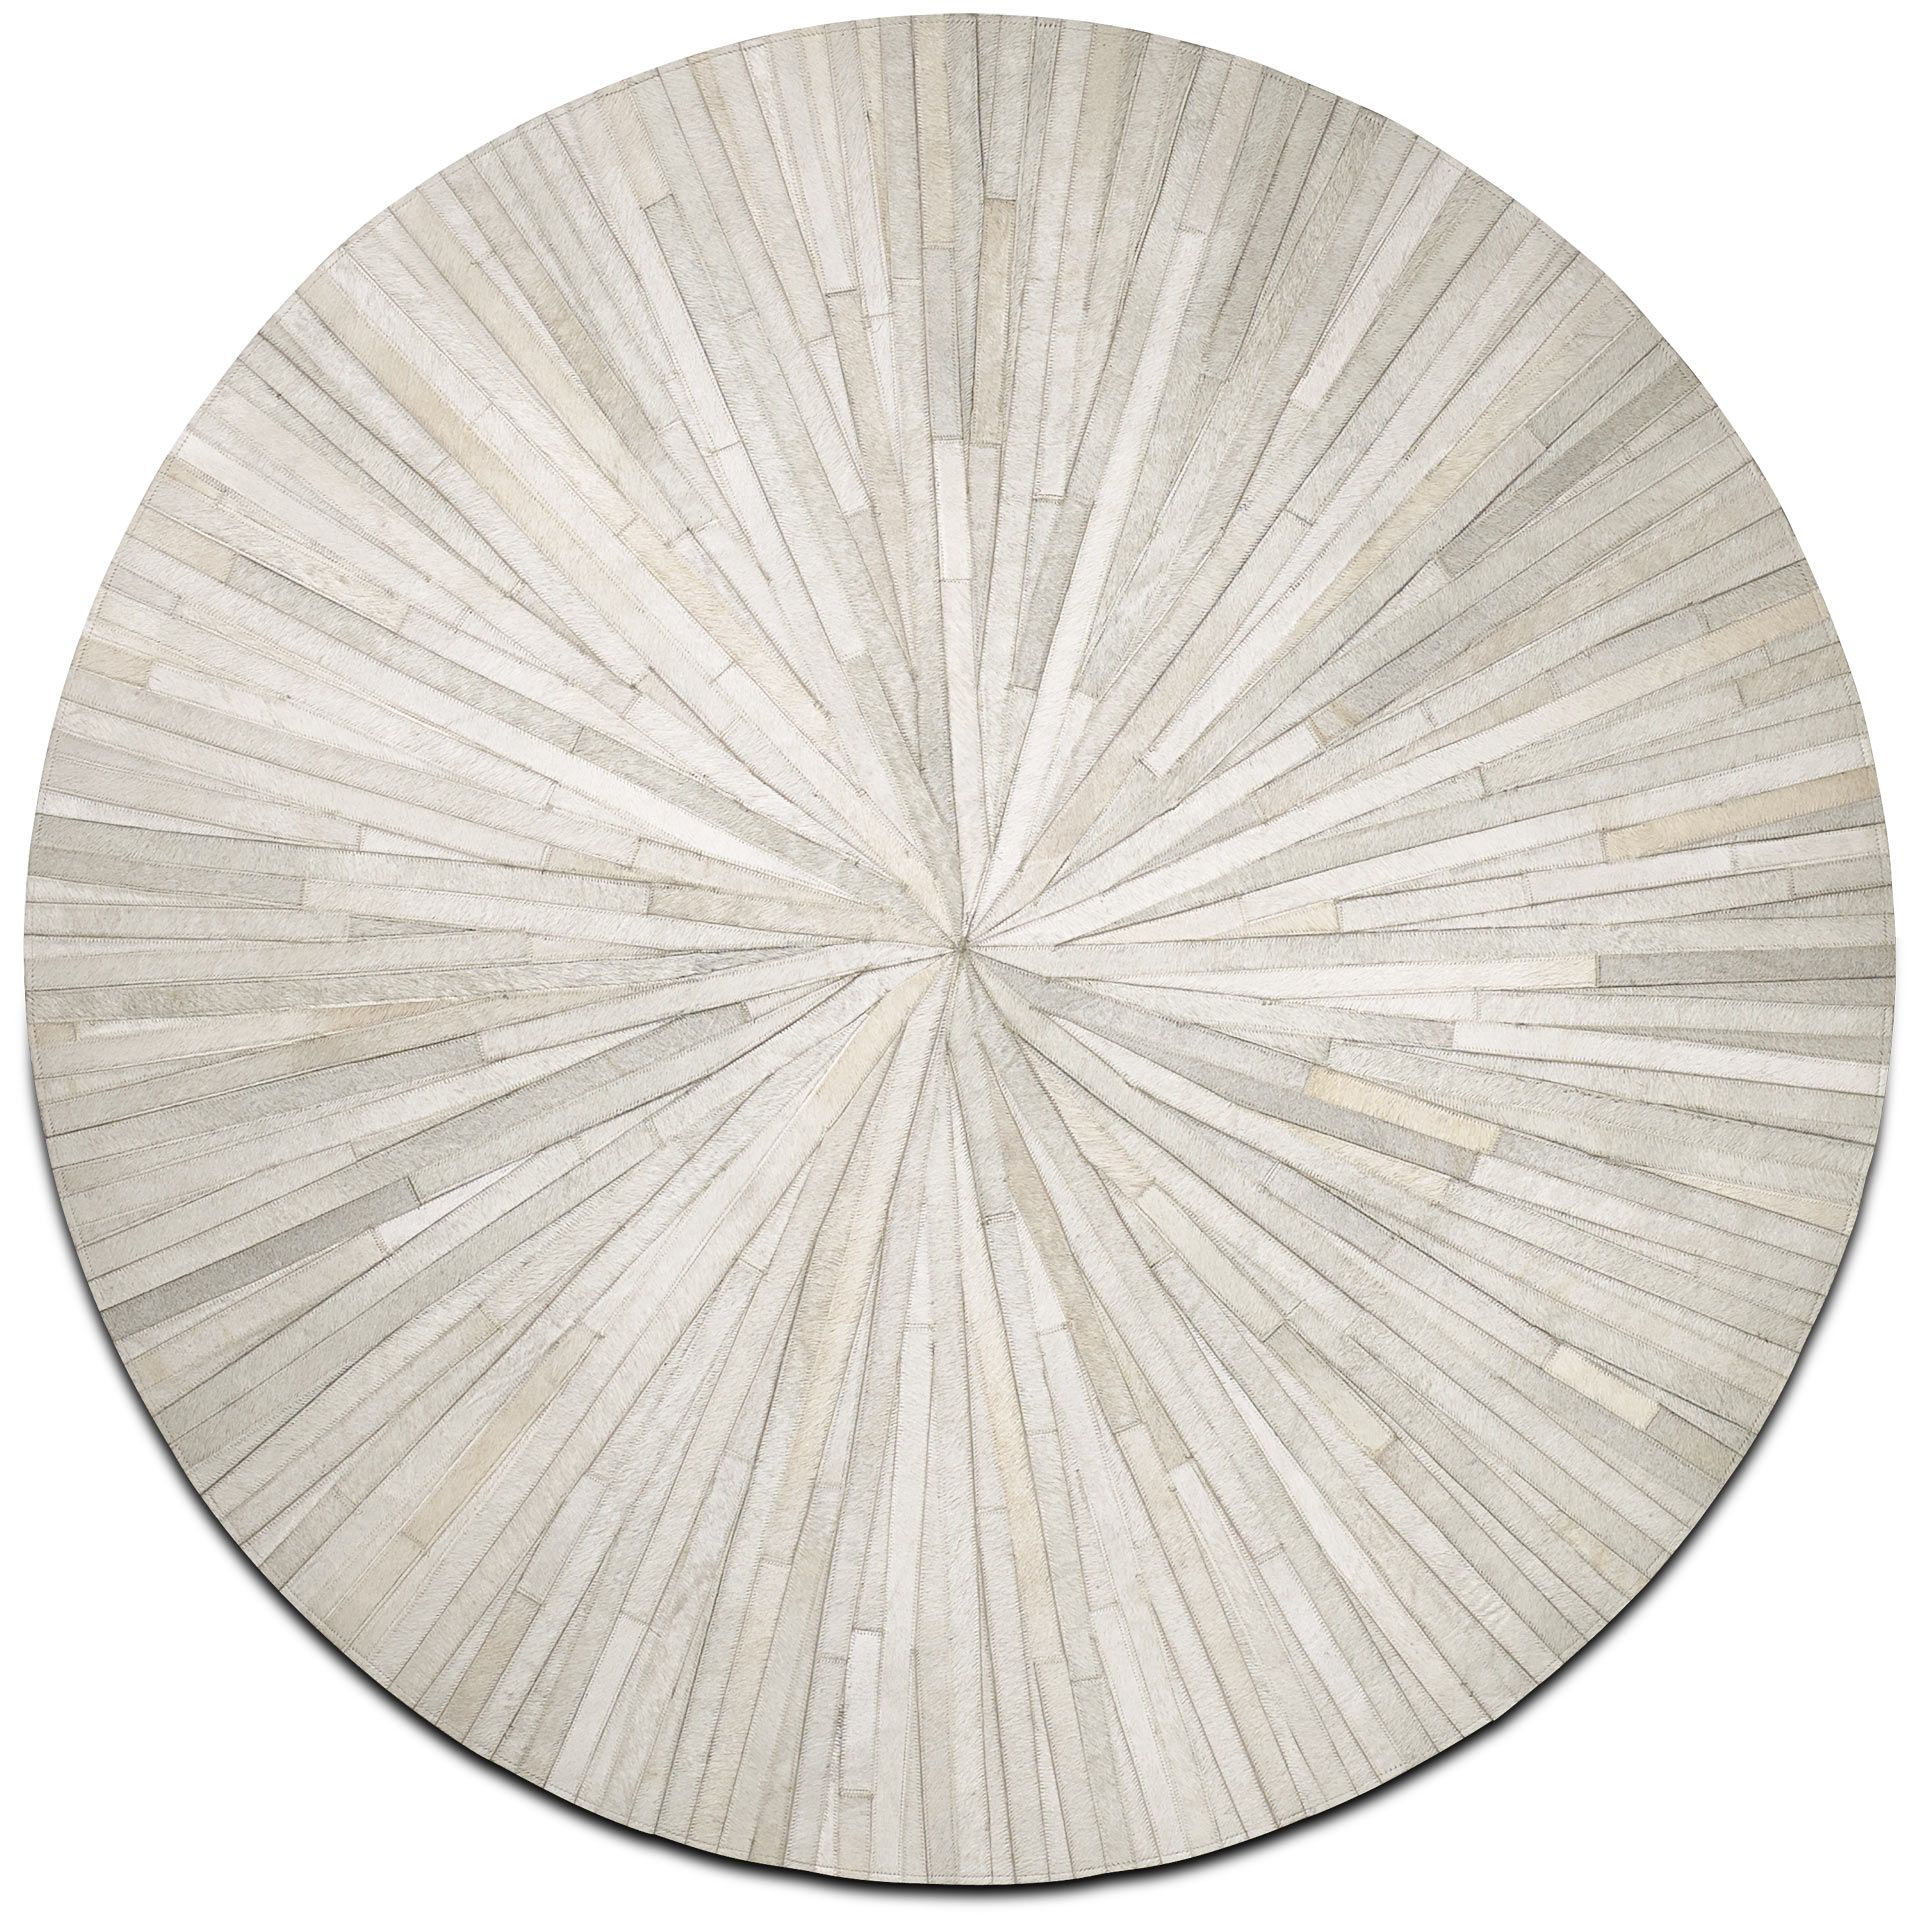 contemporary round rugs  quality from boconcept  furniture  rug  - contemporary round rugs  quality from boconcept